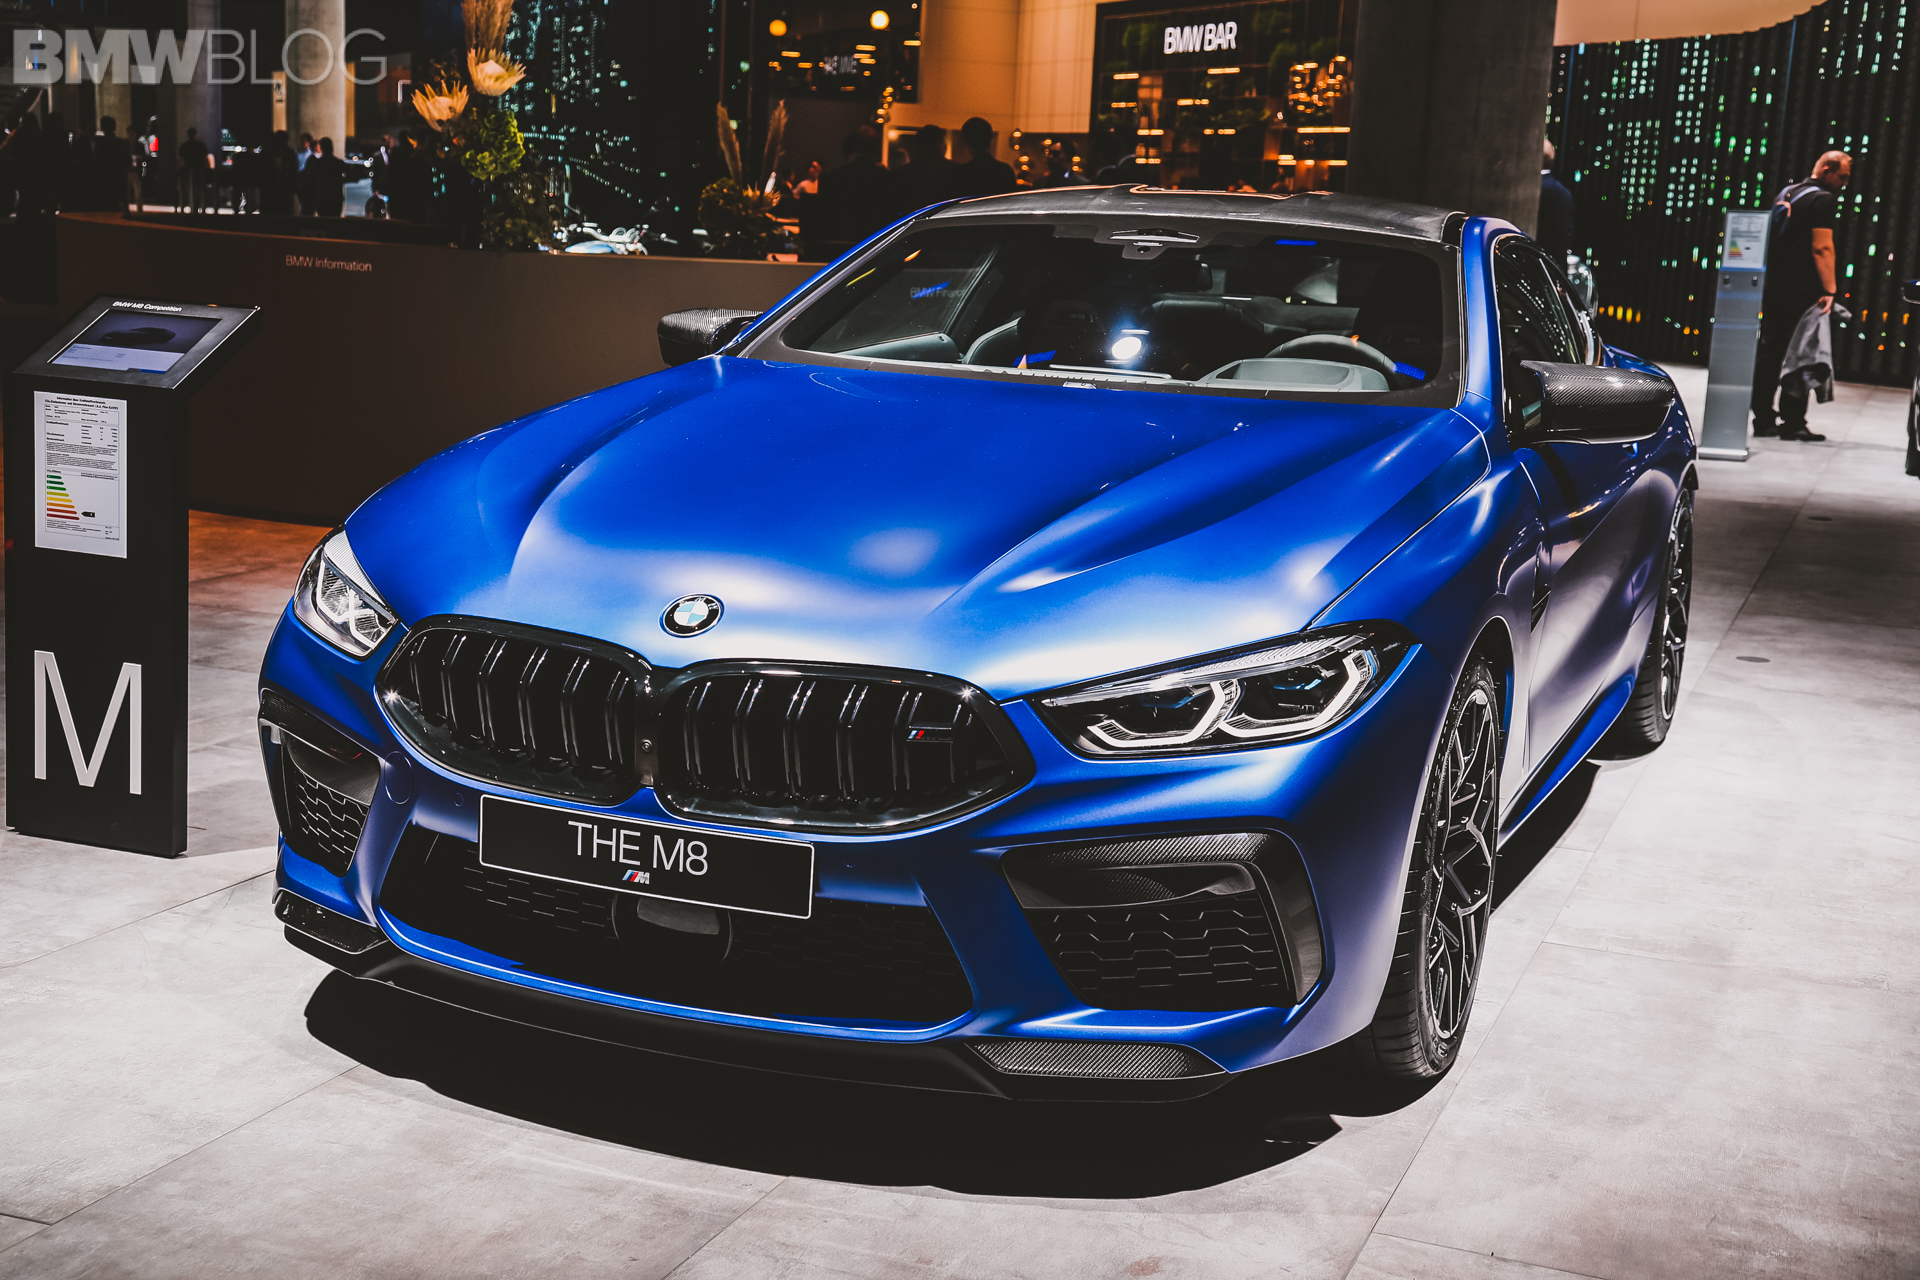 2020 BMW M8 Coupe in Frozen Marina Bay Blue – Best Color Yet?